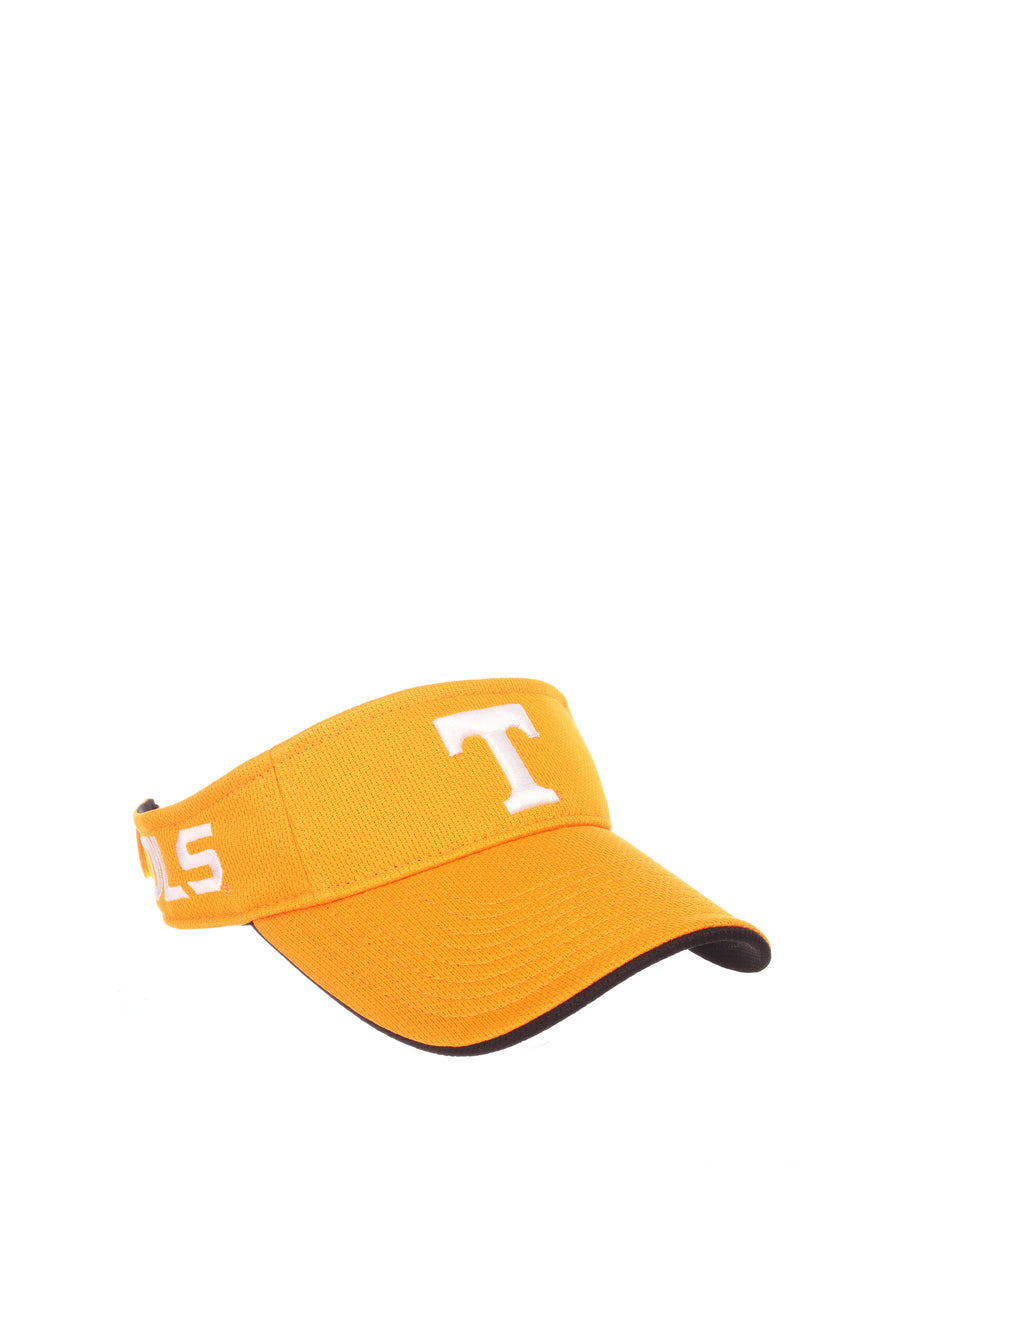 Tennessee (Knoxville) Volley Visor (T) Light Orange VaporTech Adjustable Hat by Zephyr - AtlanticCoastSports